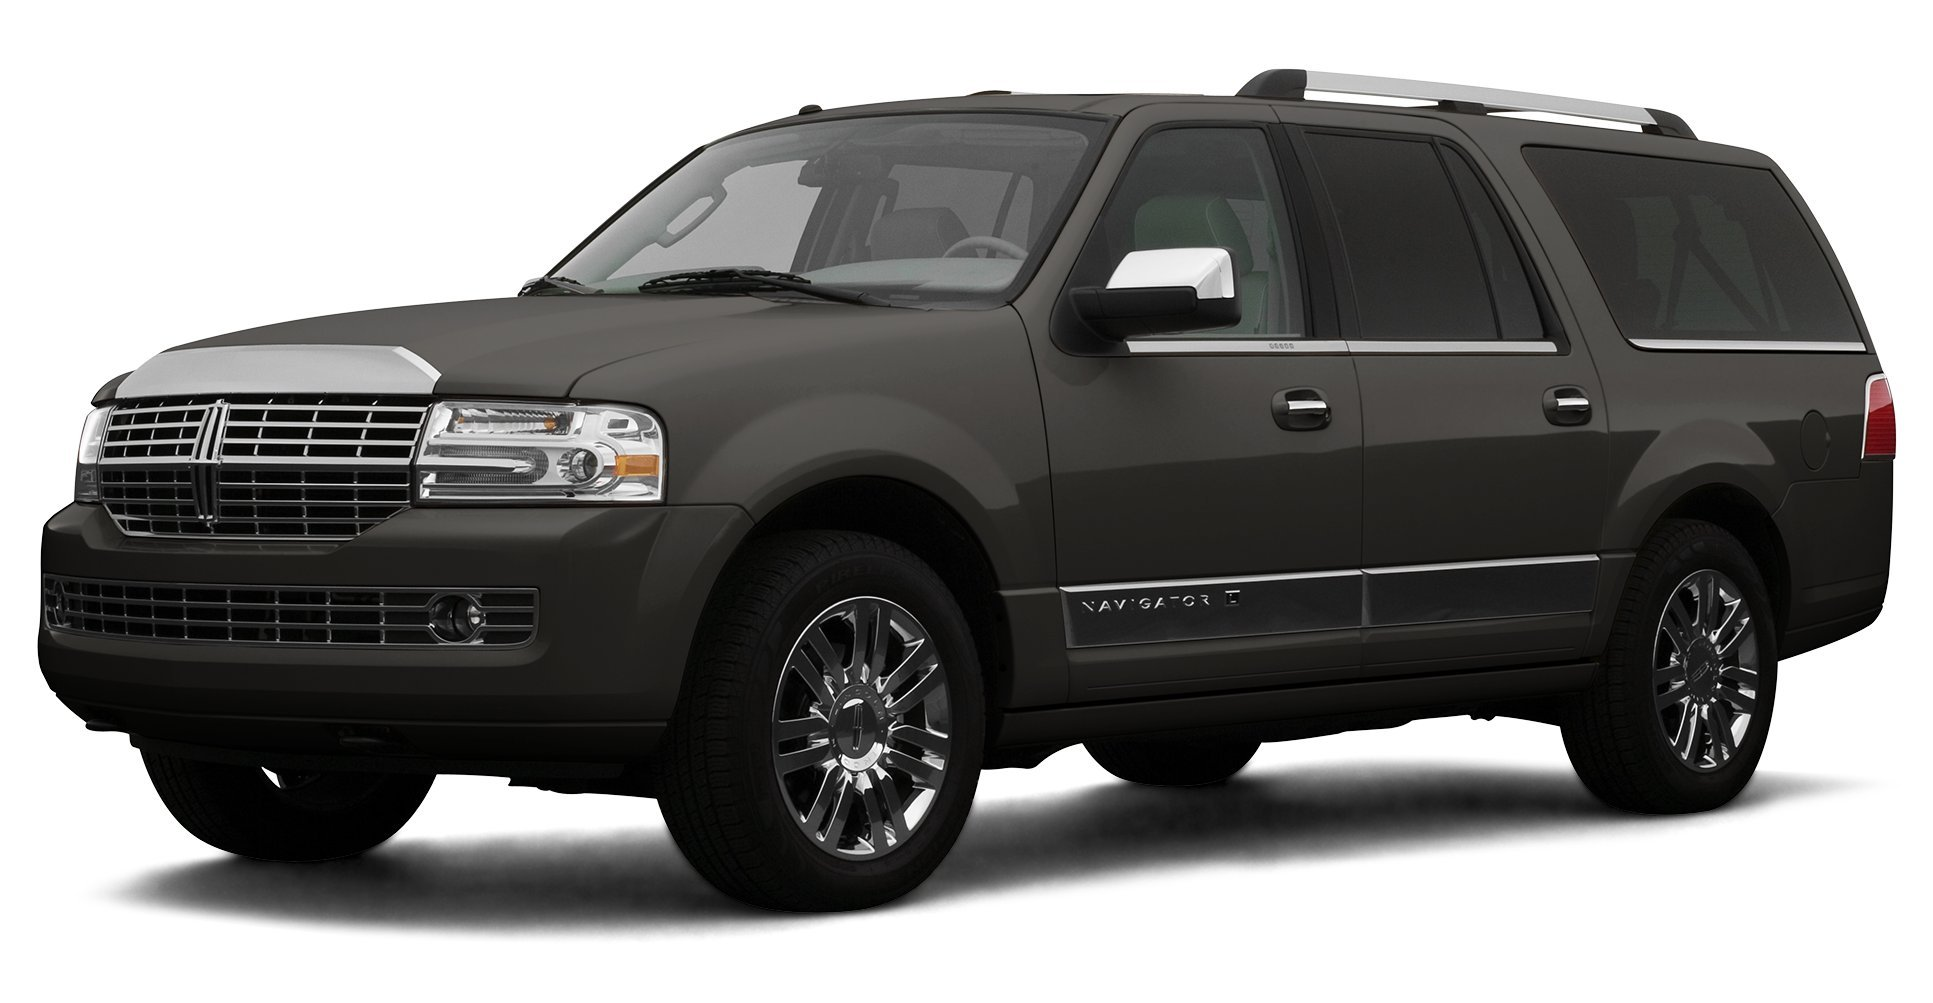 Amazon.com: 2007 Lincoln Navigator Reviews, Images, and Specs: Vehicles